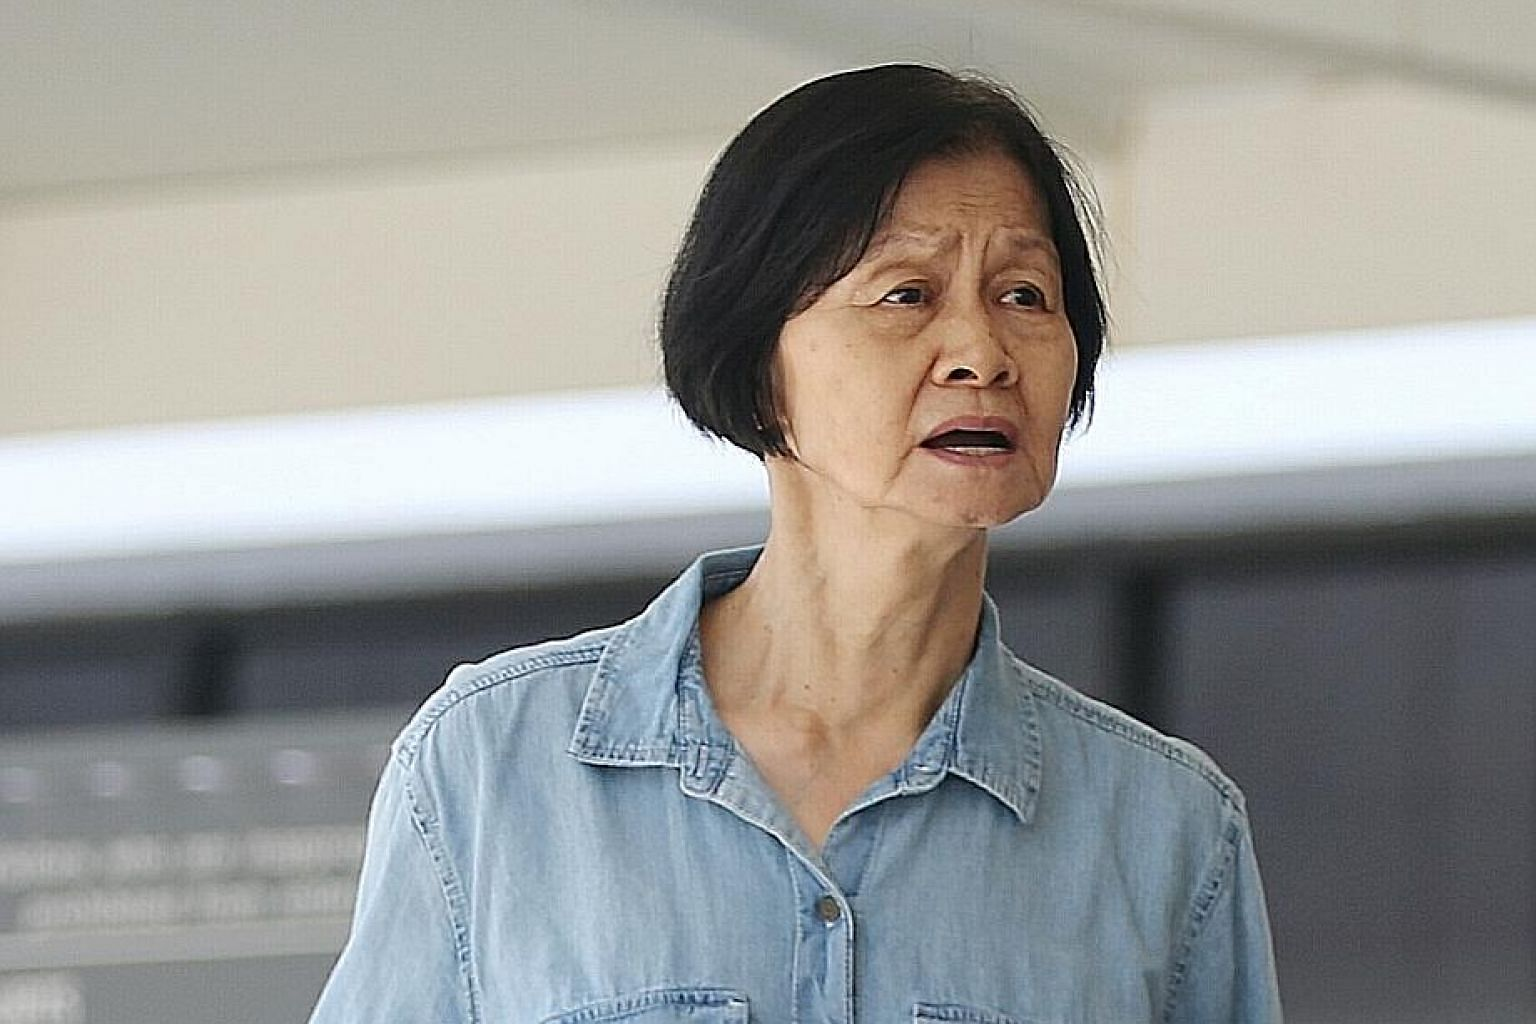 Fong Leok Moy, 68, and her daughter Wong Phuay Yee, 41, have each been sentenced to 10 days in jail for stealing more than $1,000 worth of items from shops in Orchard Road.